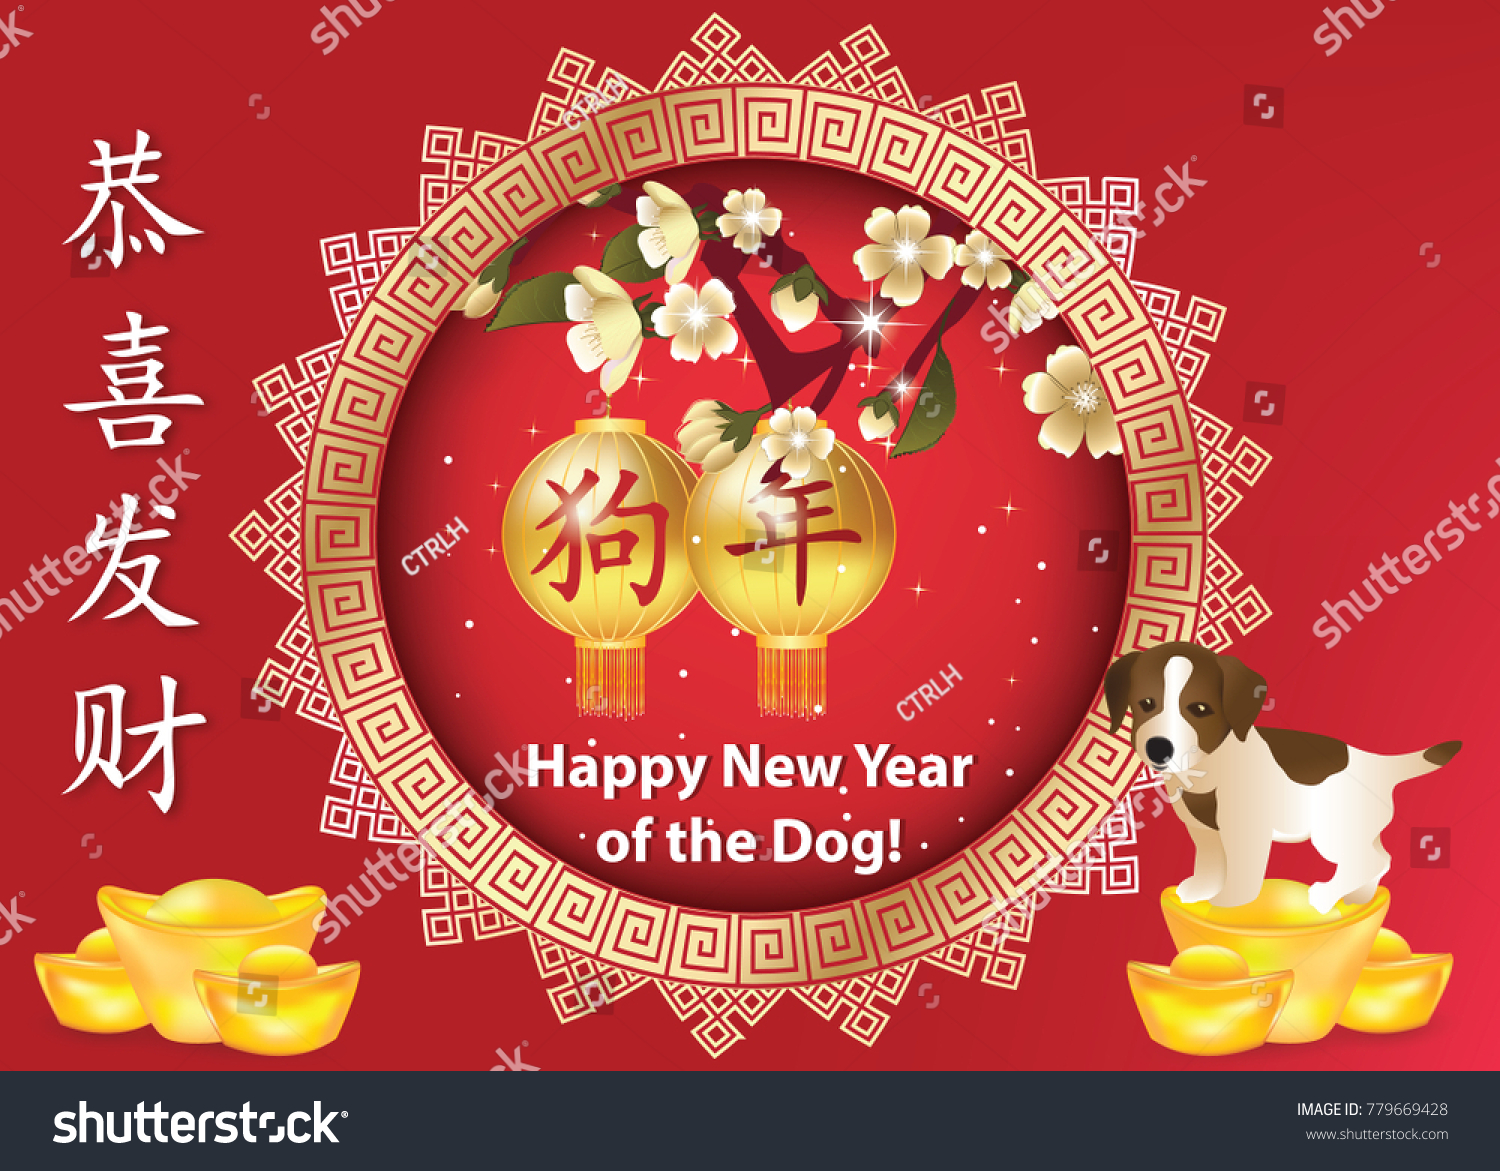 Royalty free stock illustration of happy chinese new year 2018 happy chinese new year 2018 greeting card with text in chinese and english ideograms m4hsunfo